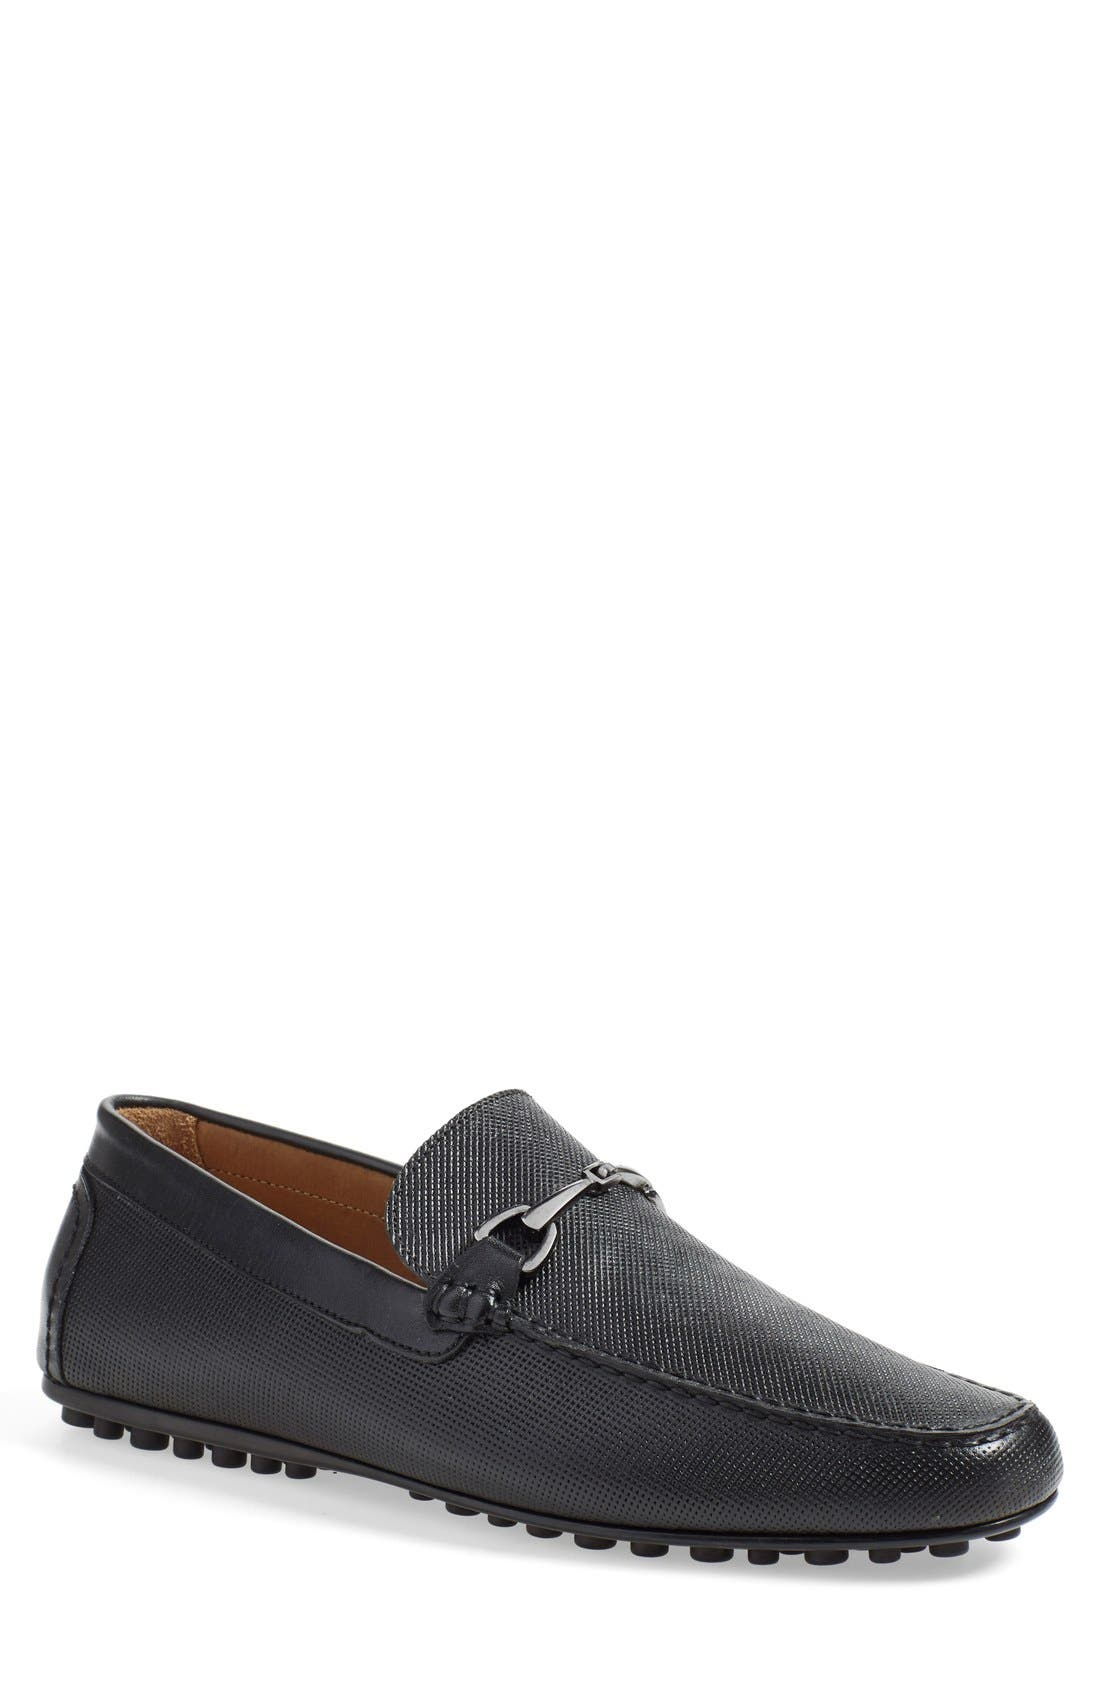 Alternate Image 1 Selected - John W. Nordstrom® 'Arco' Driving Shoe (Men)